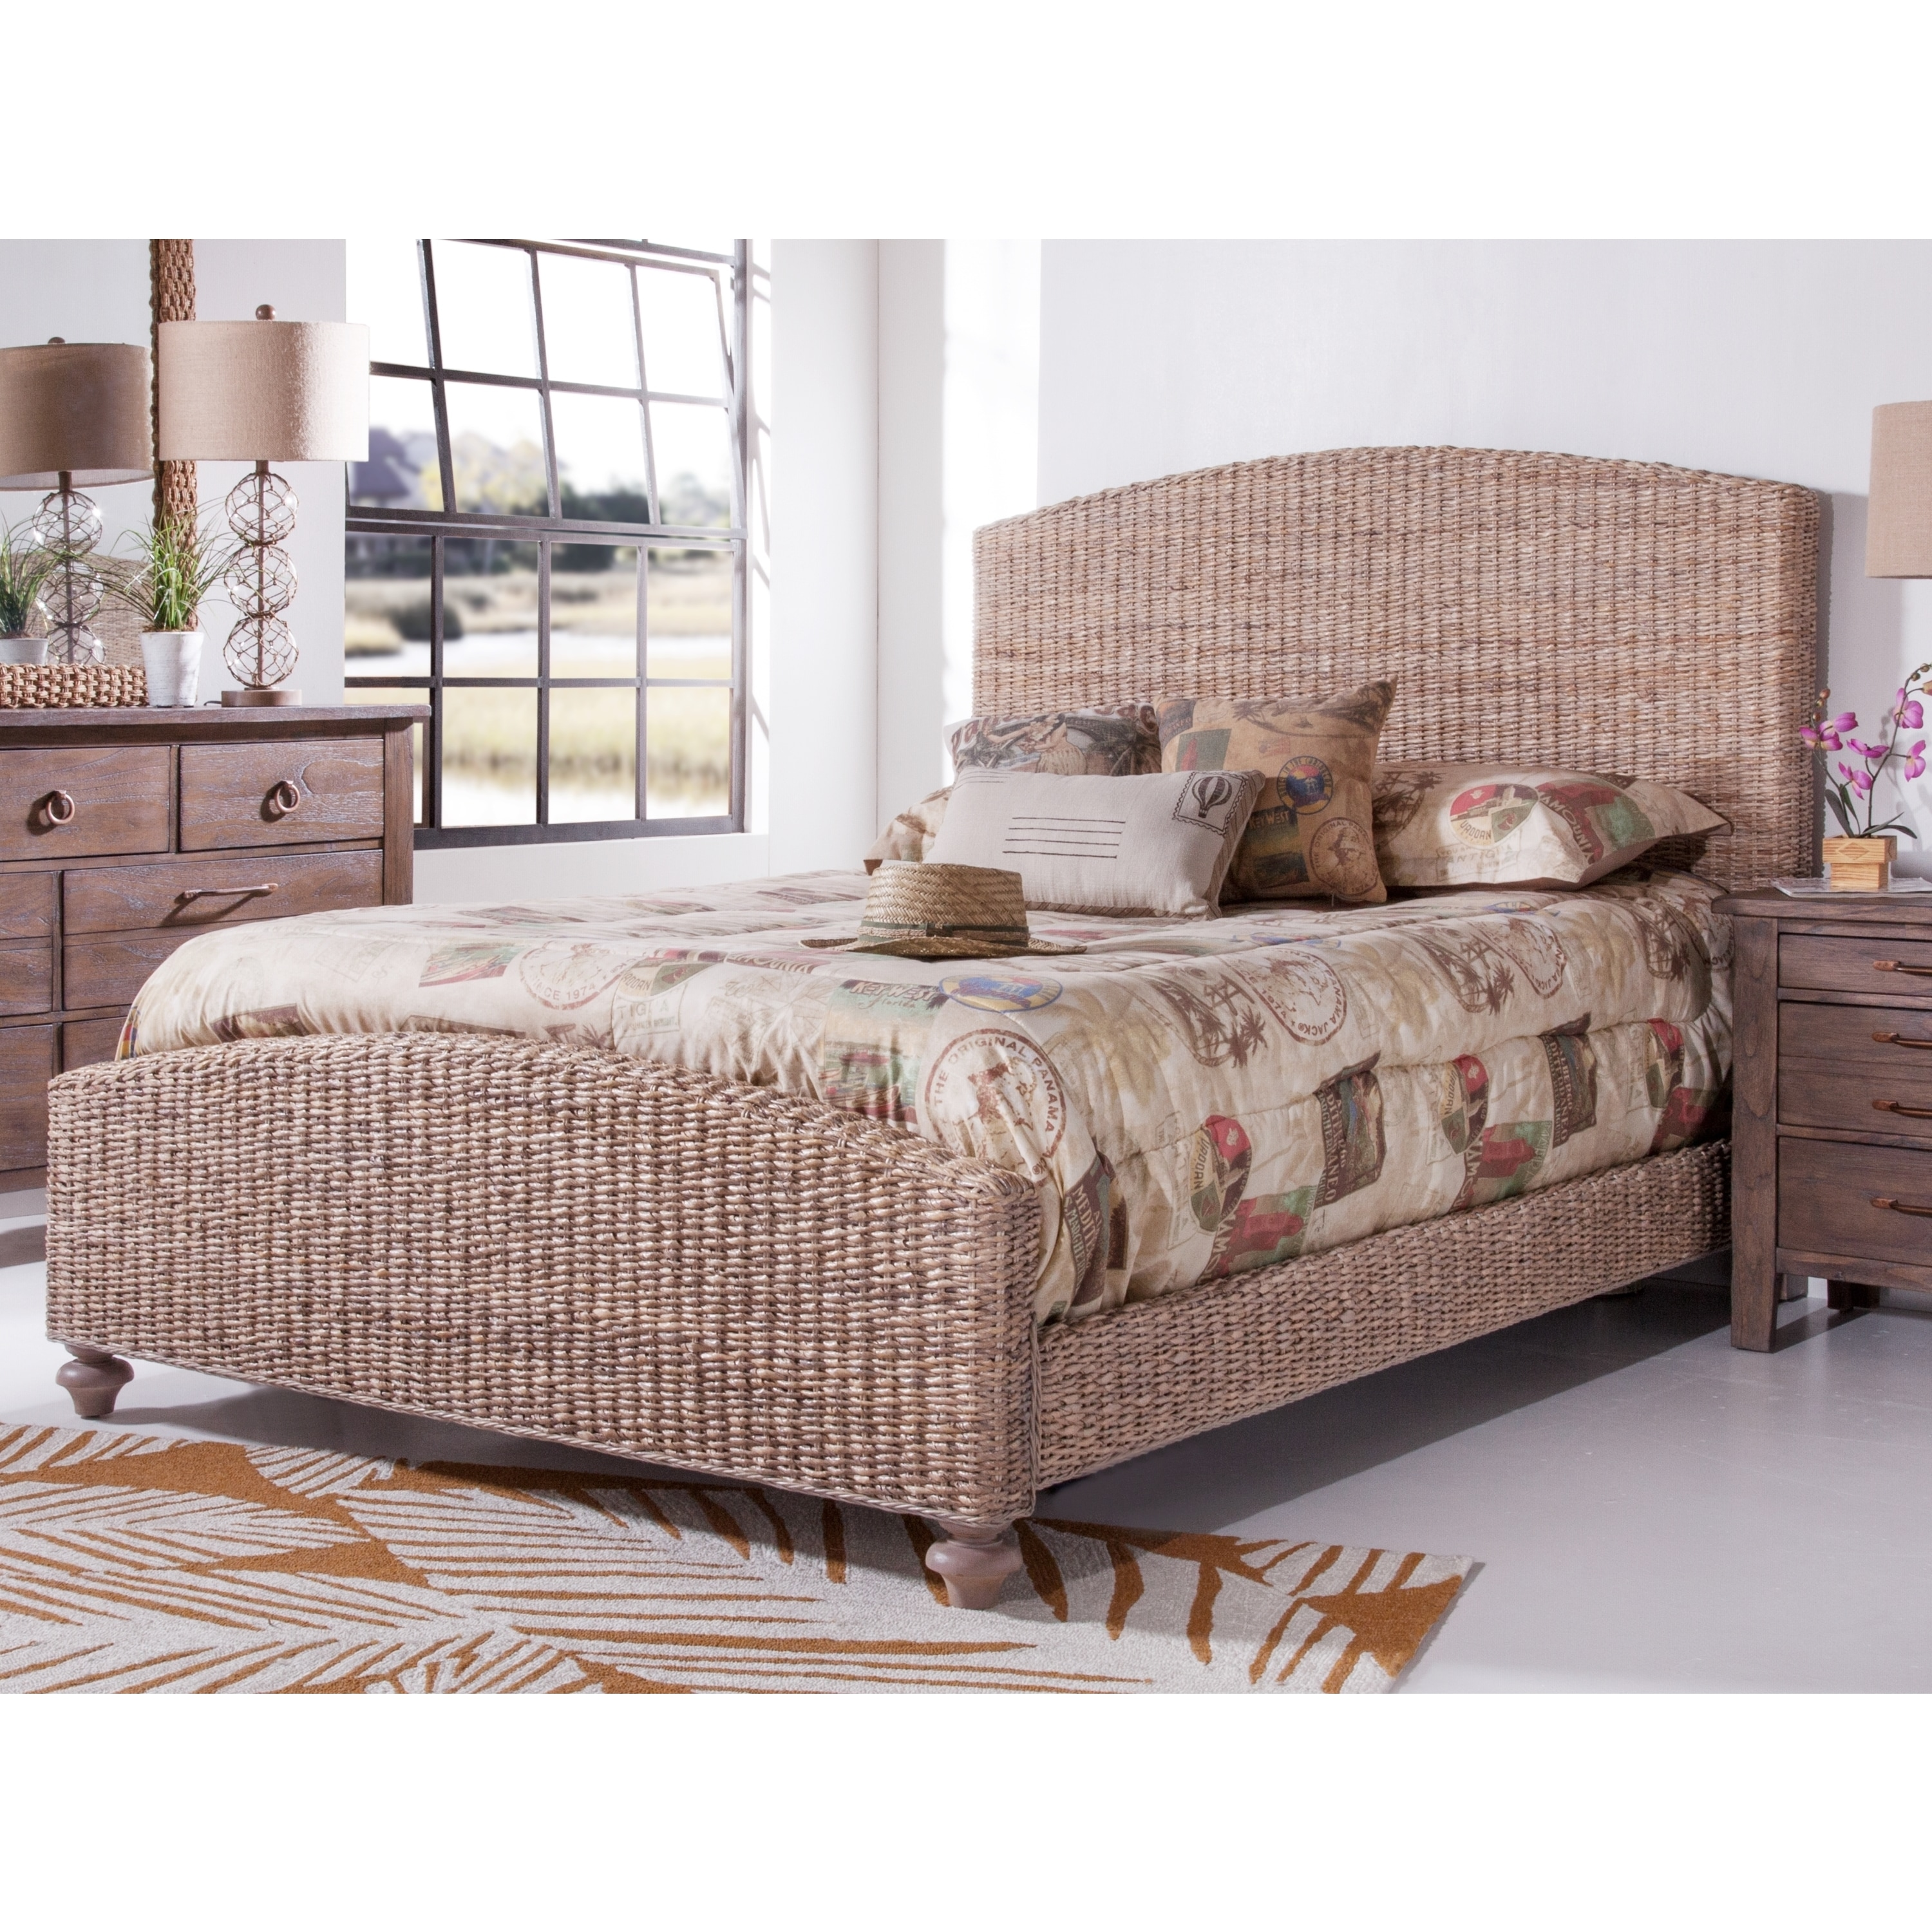 Shop Driftwood Woven Bed By Panama Jack Free Shipping Today - Panama jack bedroom furniture